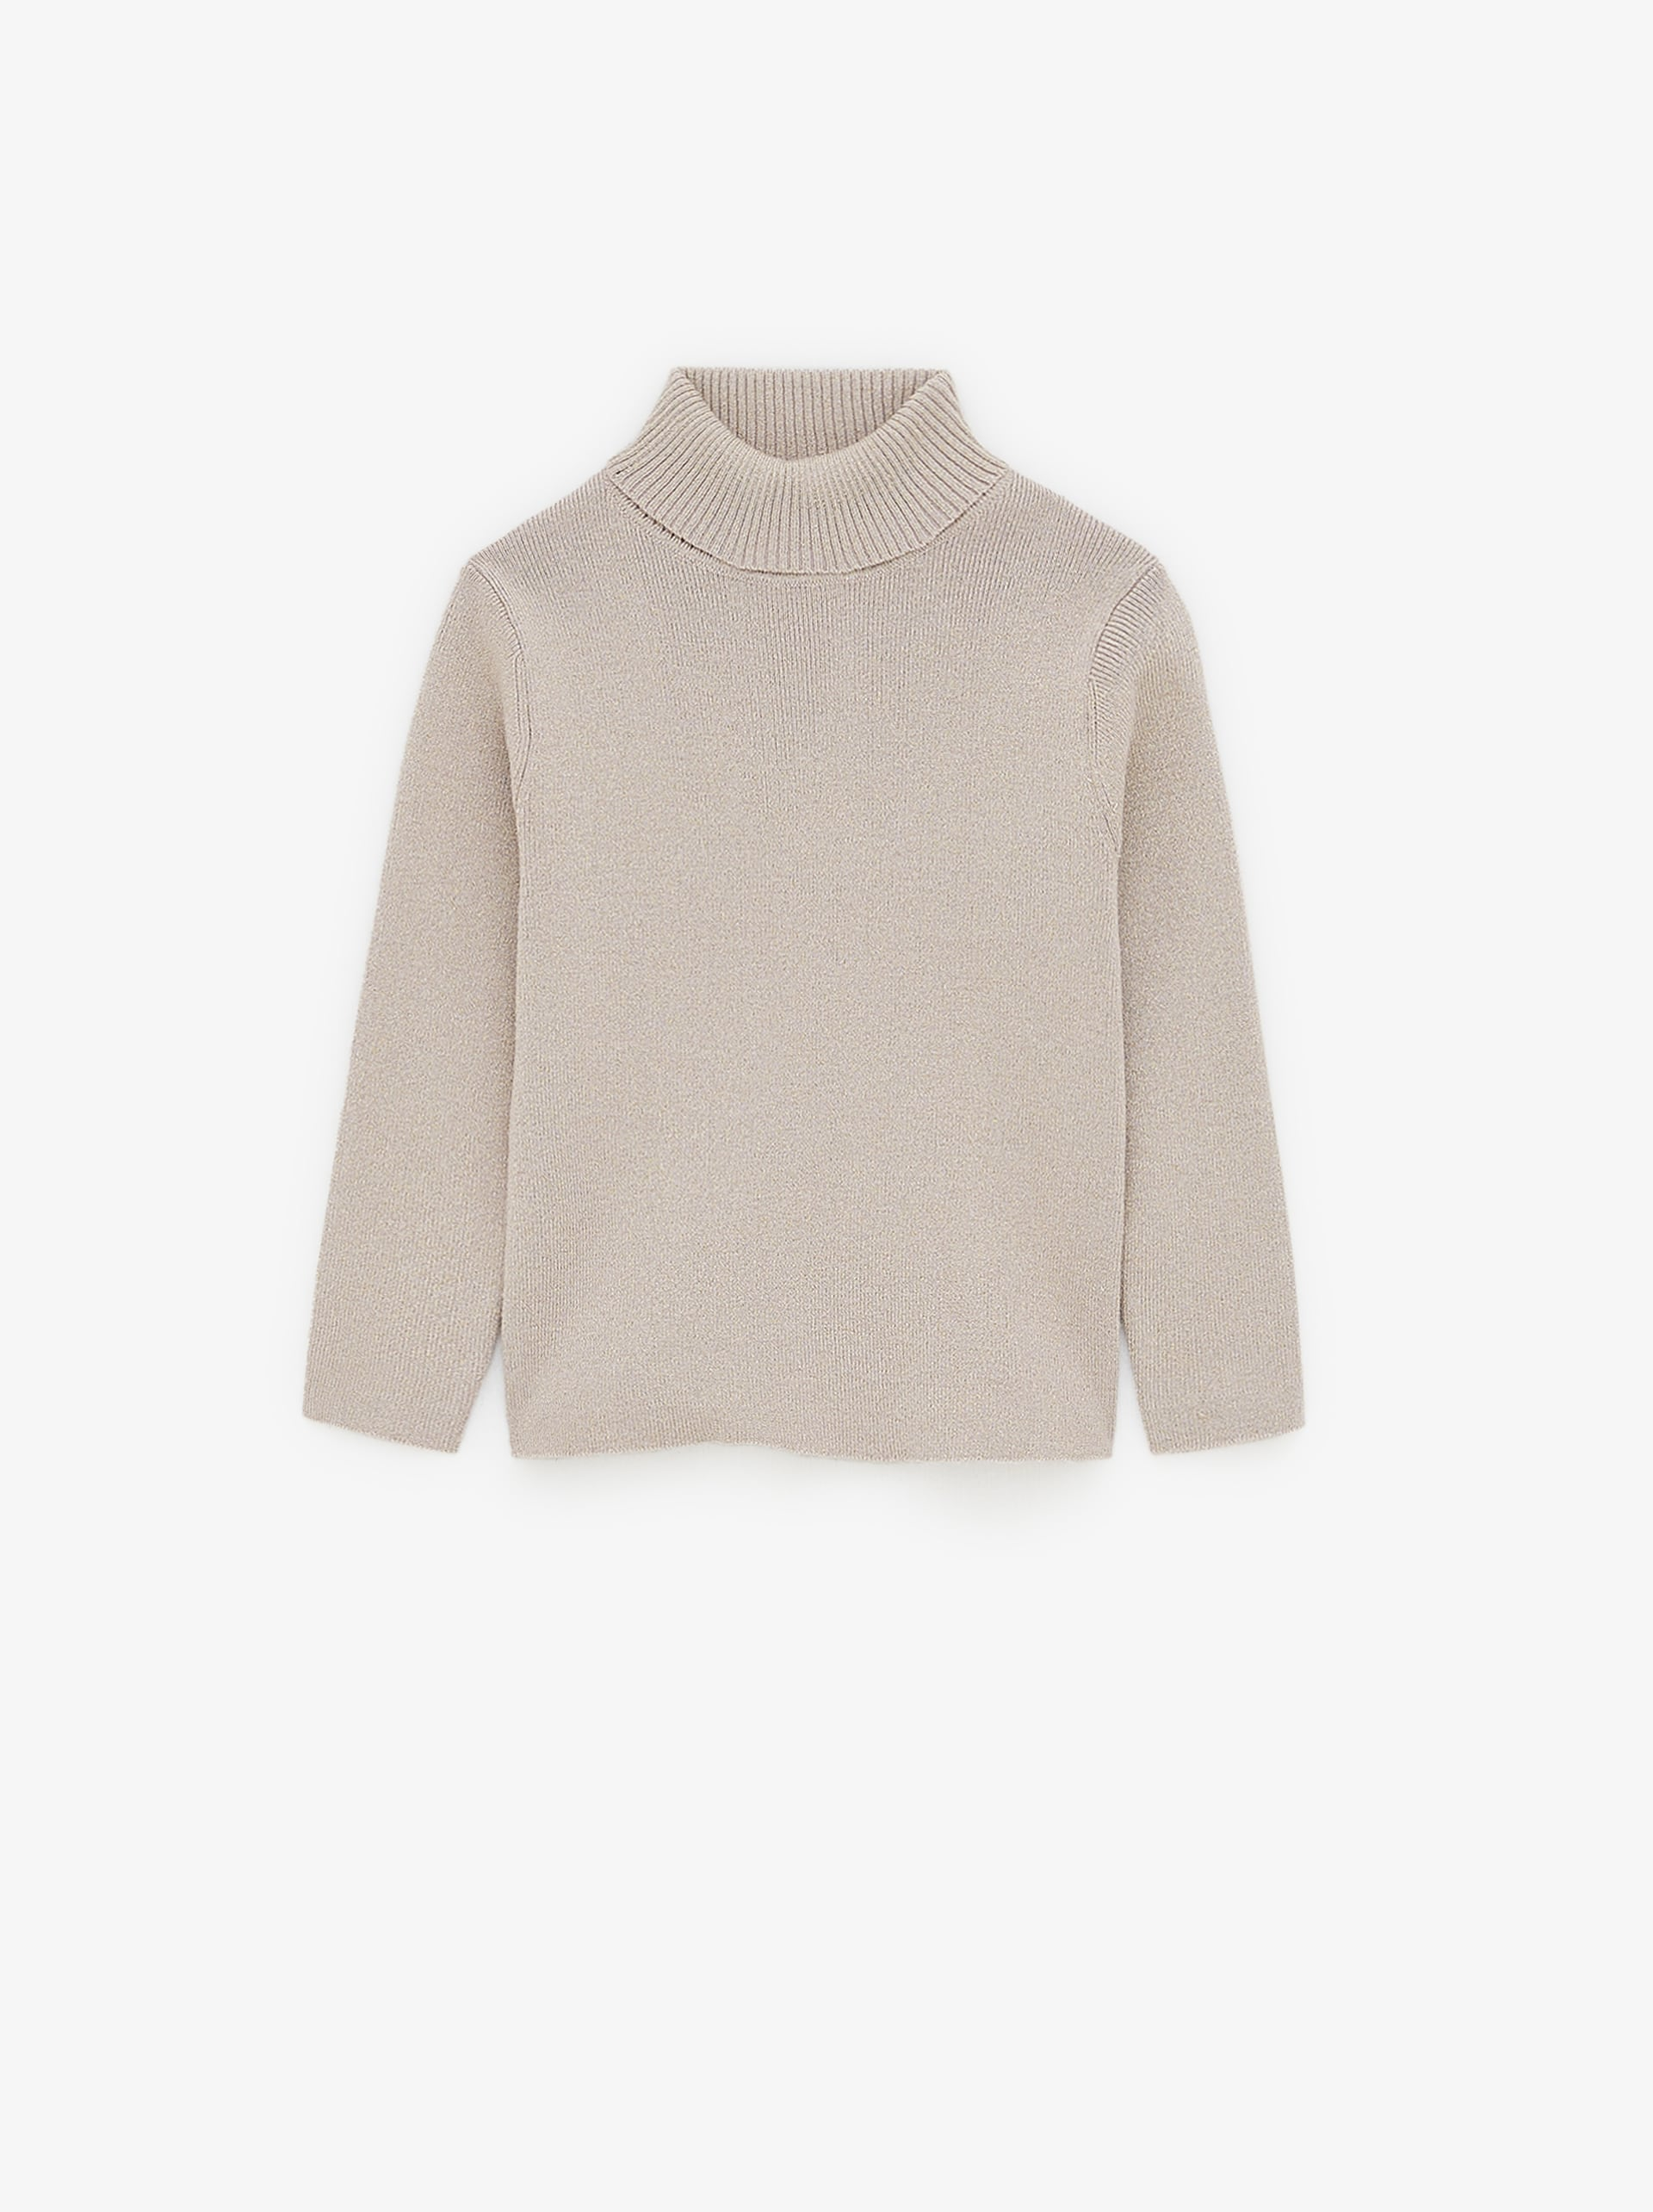 SHIMMERY TURTLENECK NECK SWEATER